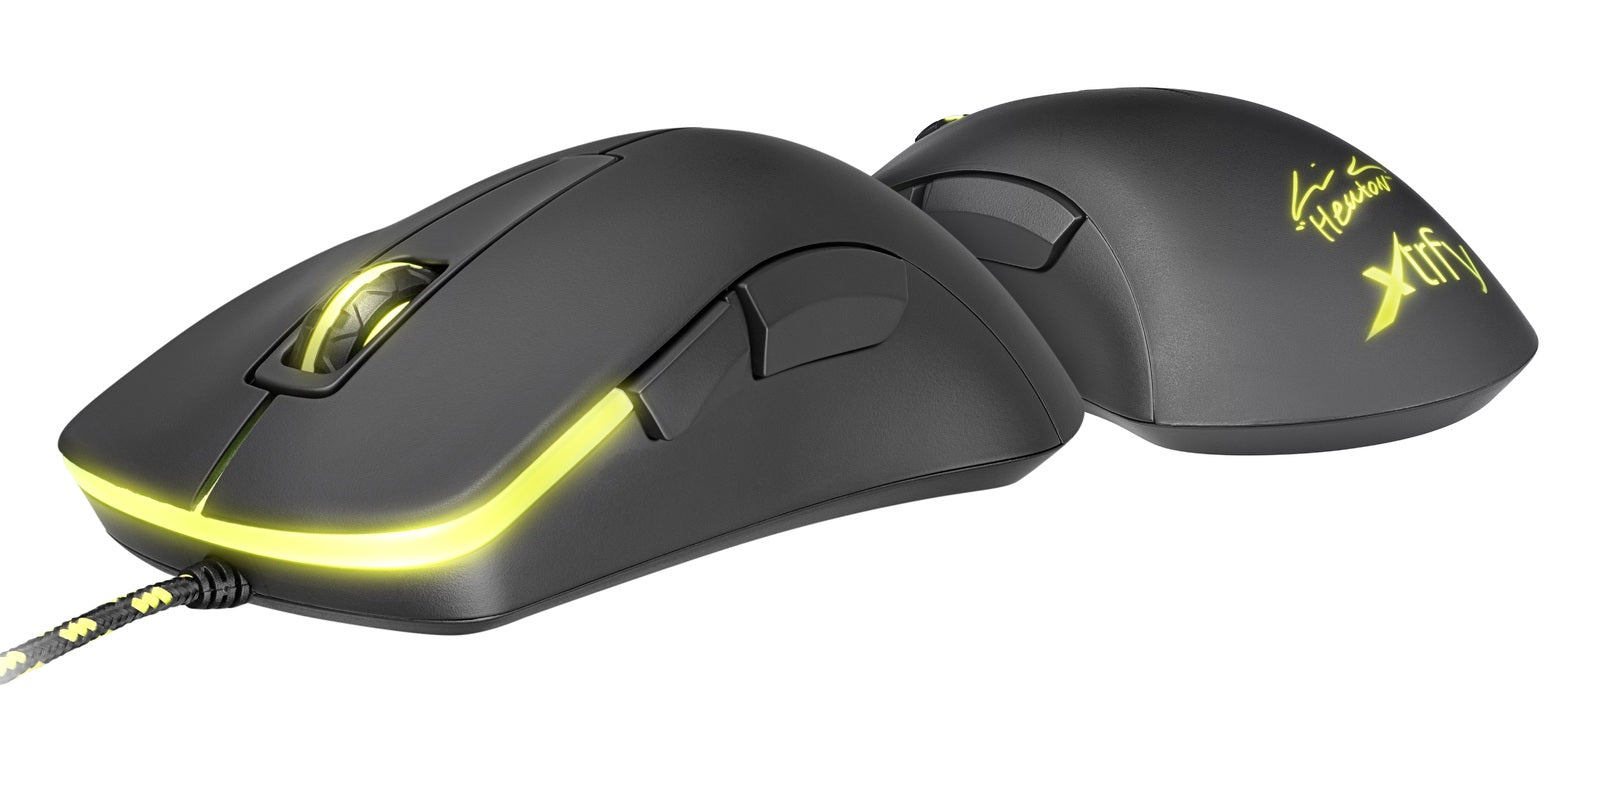 XTRFY M3 Optical Gaming Mouse - Heaton Edition - PC Games